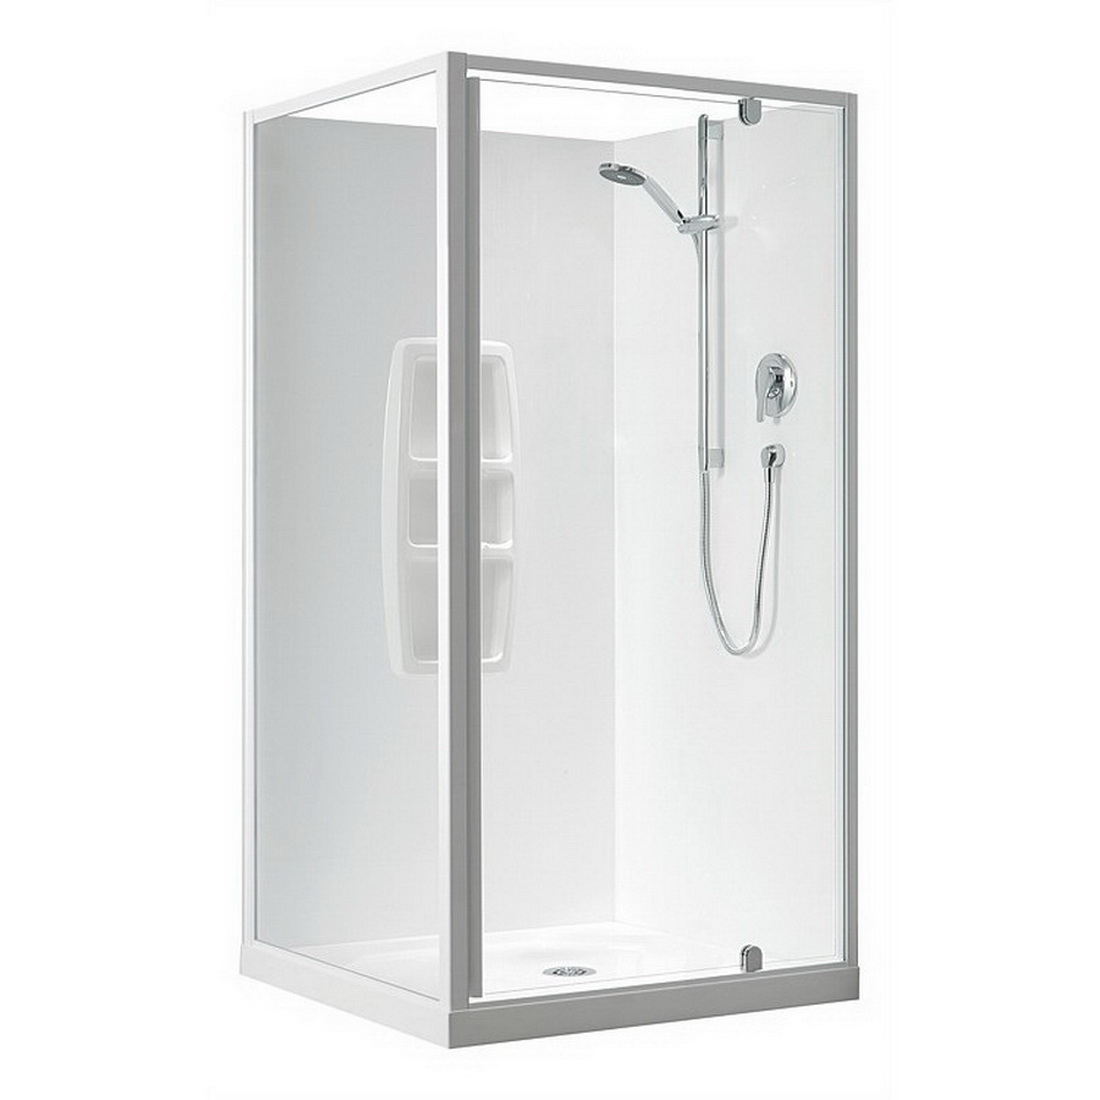 Sierra 900 x 900mm 2 Sided Square Mould Shower Enclosure White